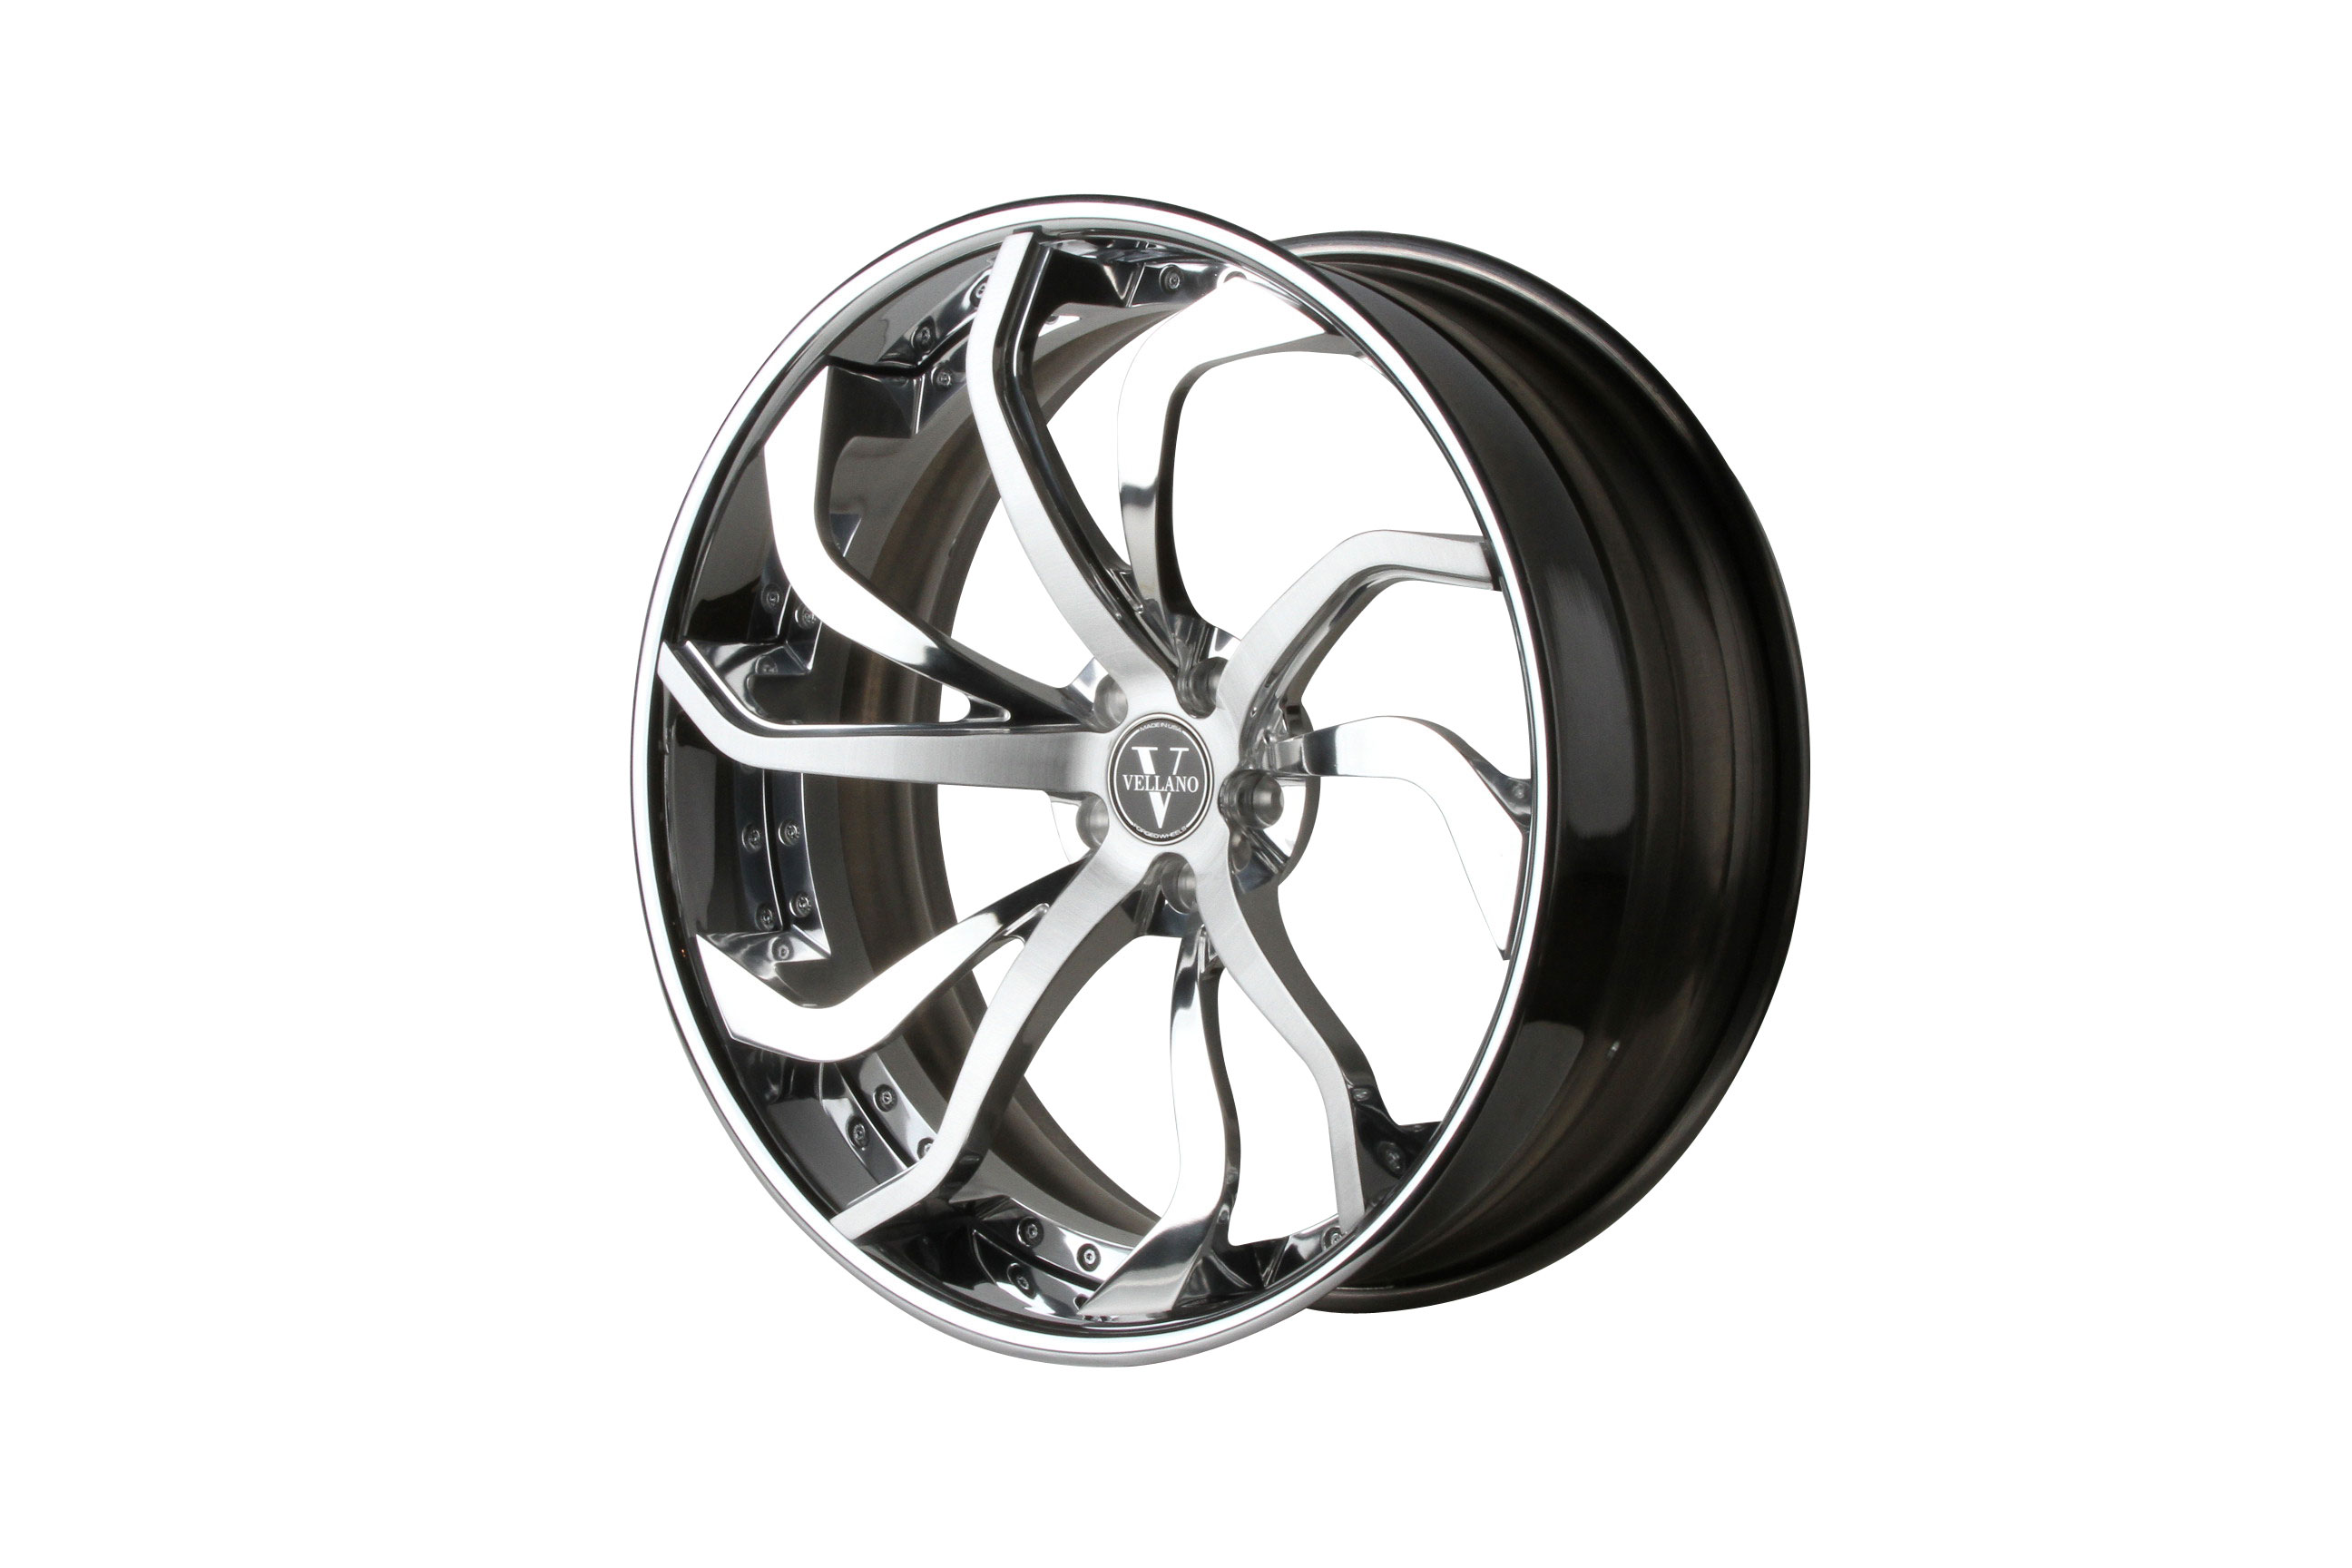 VCY_Concave_19,20,21,22,24,26inch.jpg